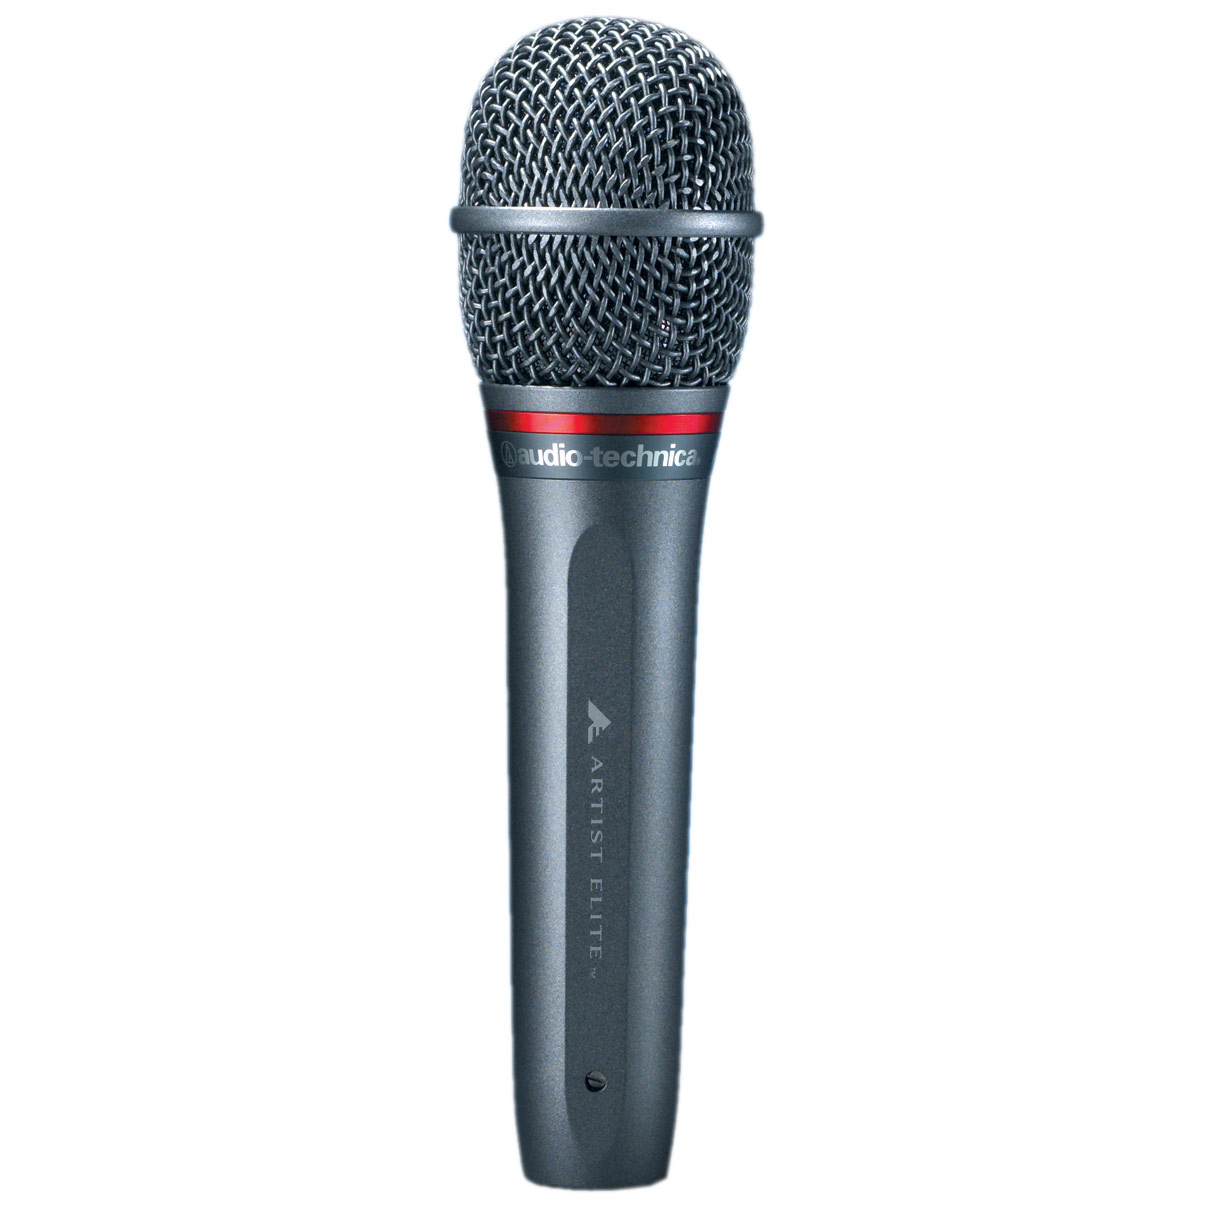 Audio Technica AE6100 Cardioid Microphone